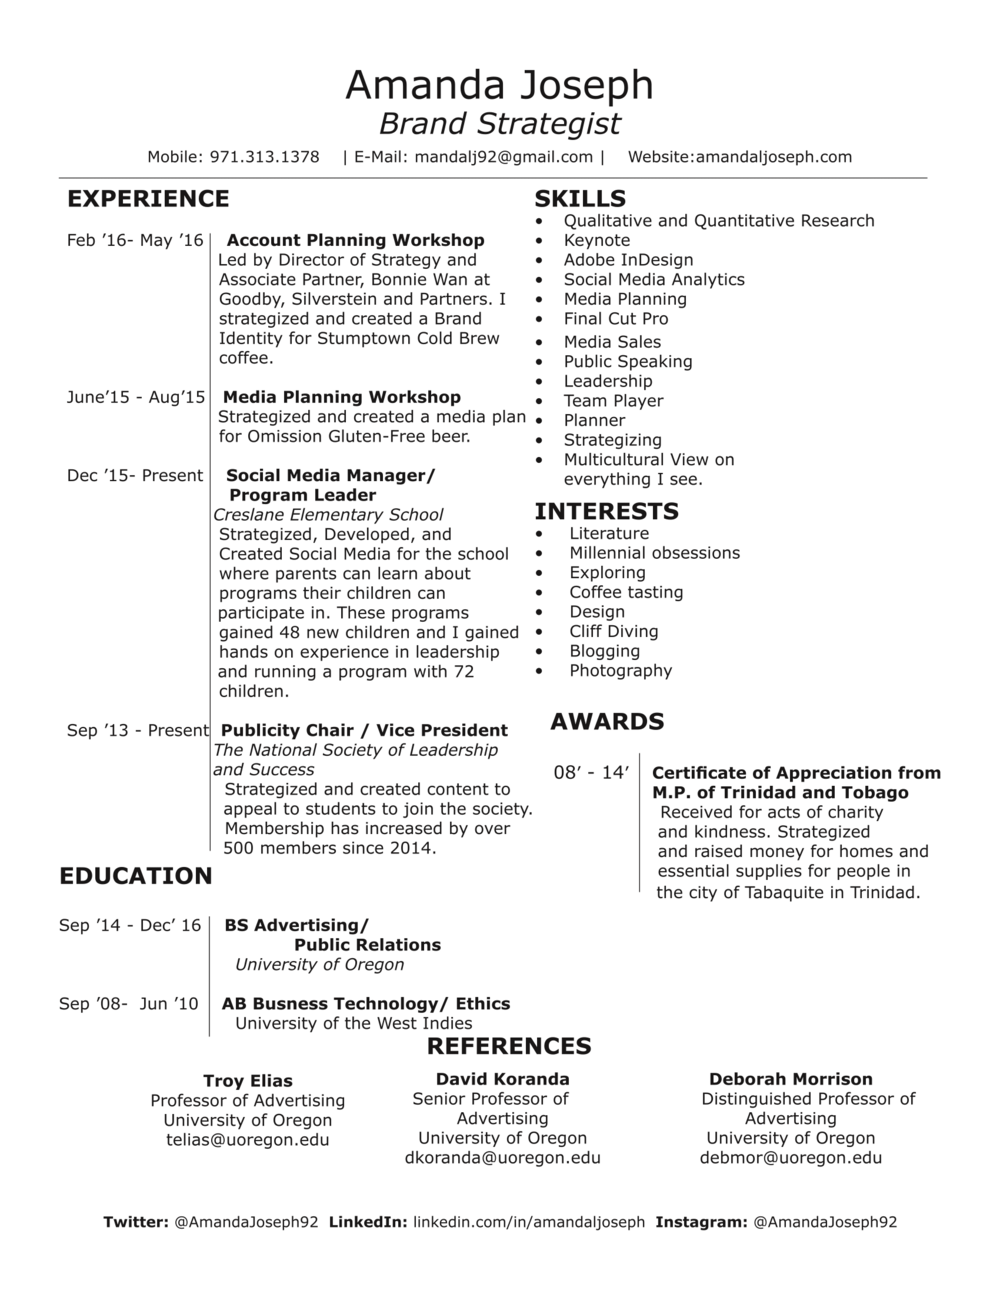 Resume National Society Of Leadership And Success Resume amanda joseph resume png